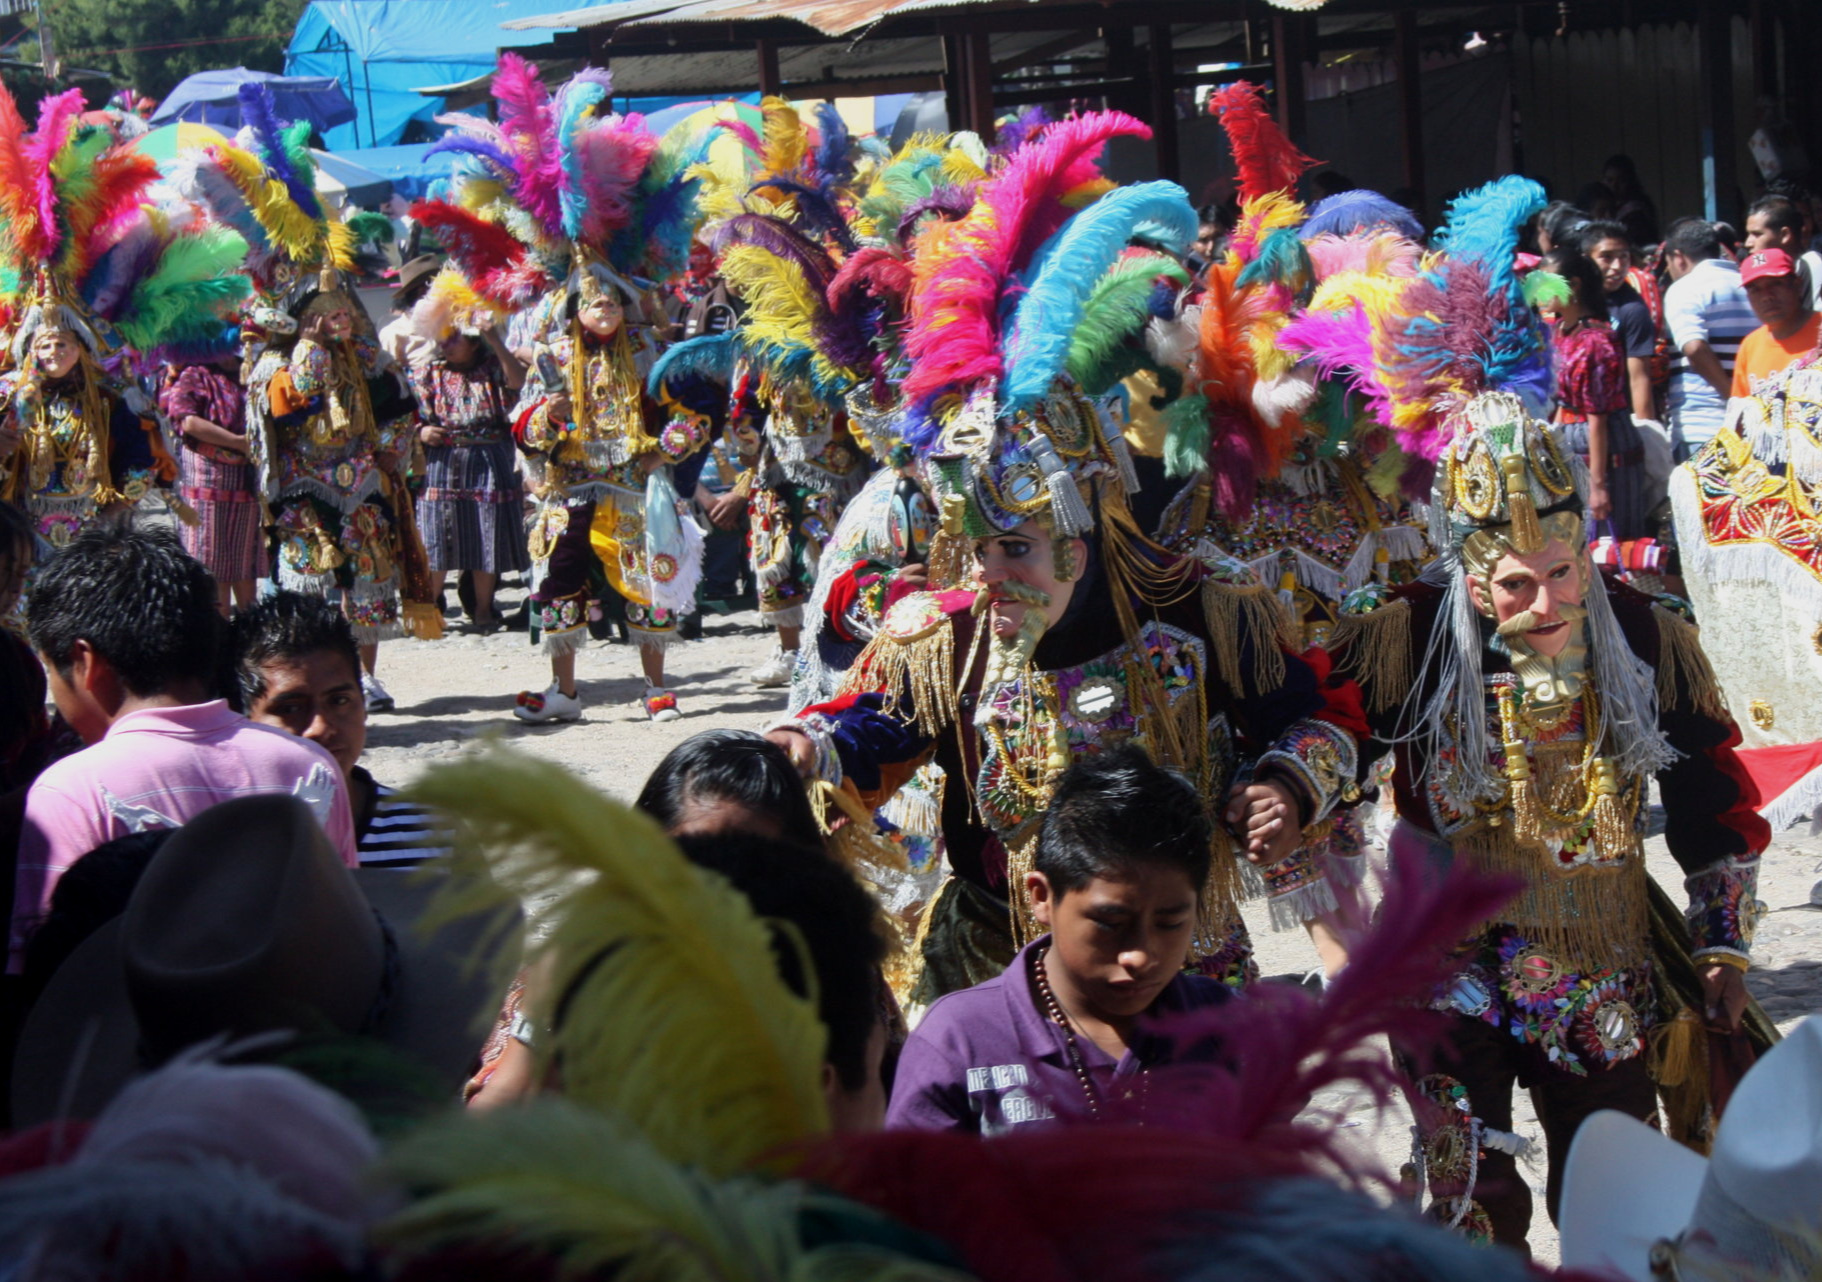 A scene from  El Baile de la Conquista de Guatemala  being danced by K'iche' performers. The pale-skinned, blue-eyed, blonde-bearded masks in the foreground represent Pedro de Alvarado and one of his captains.